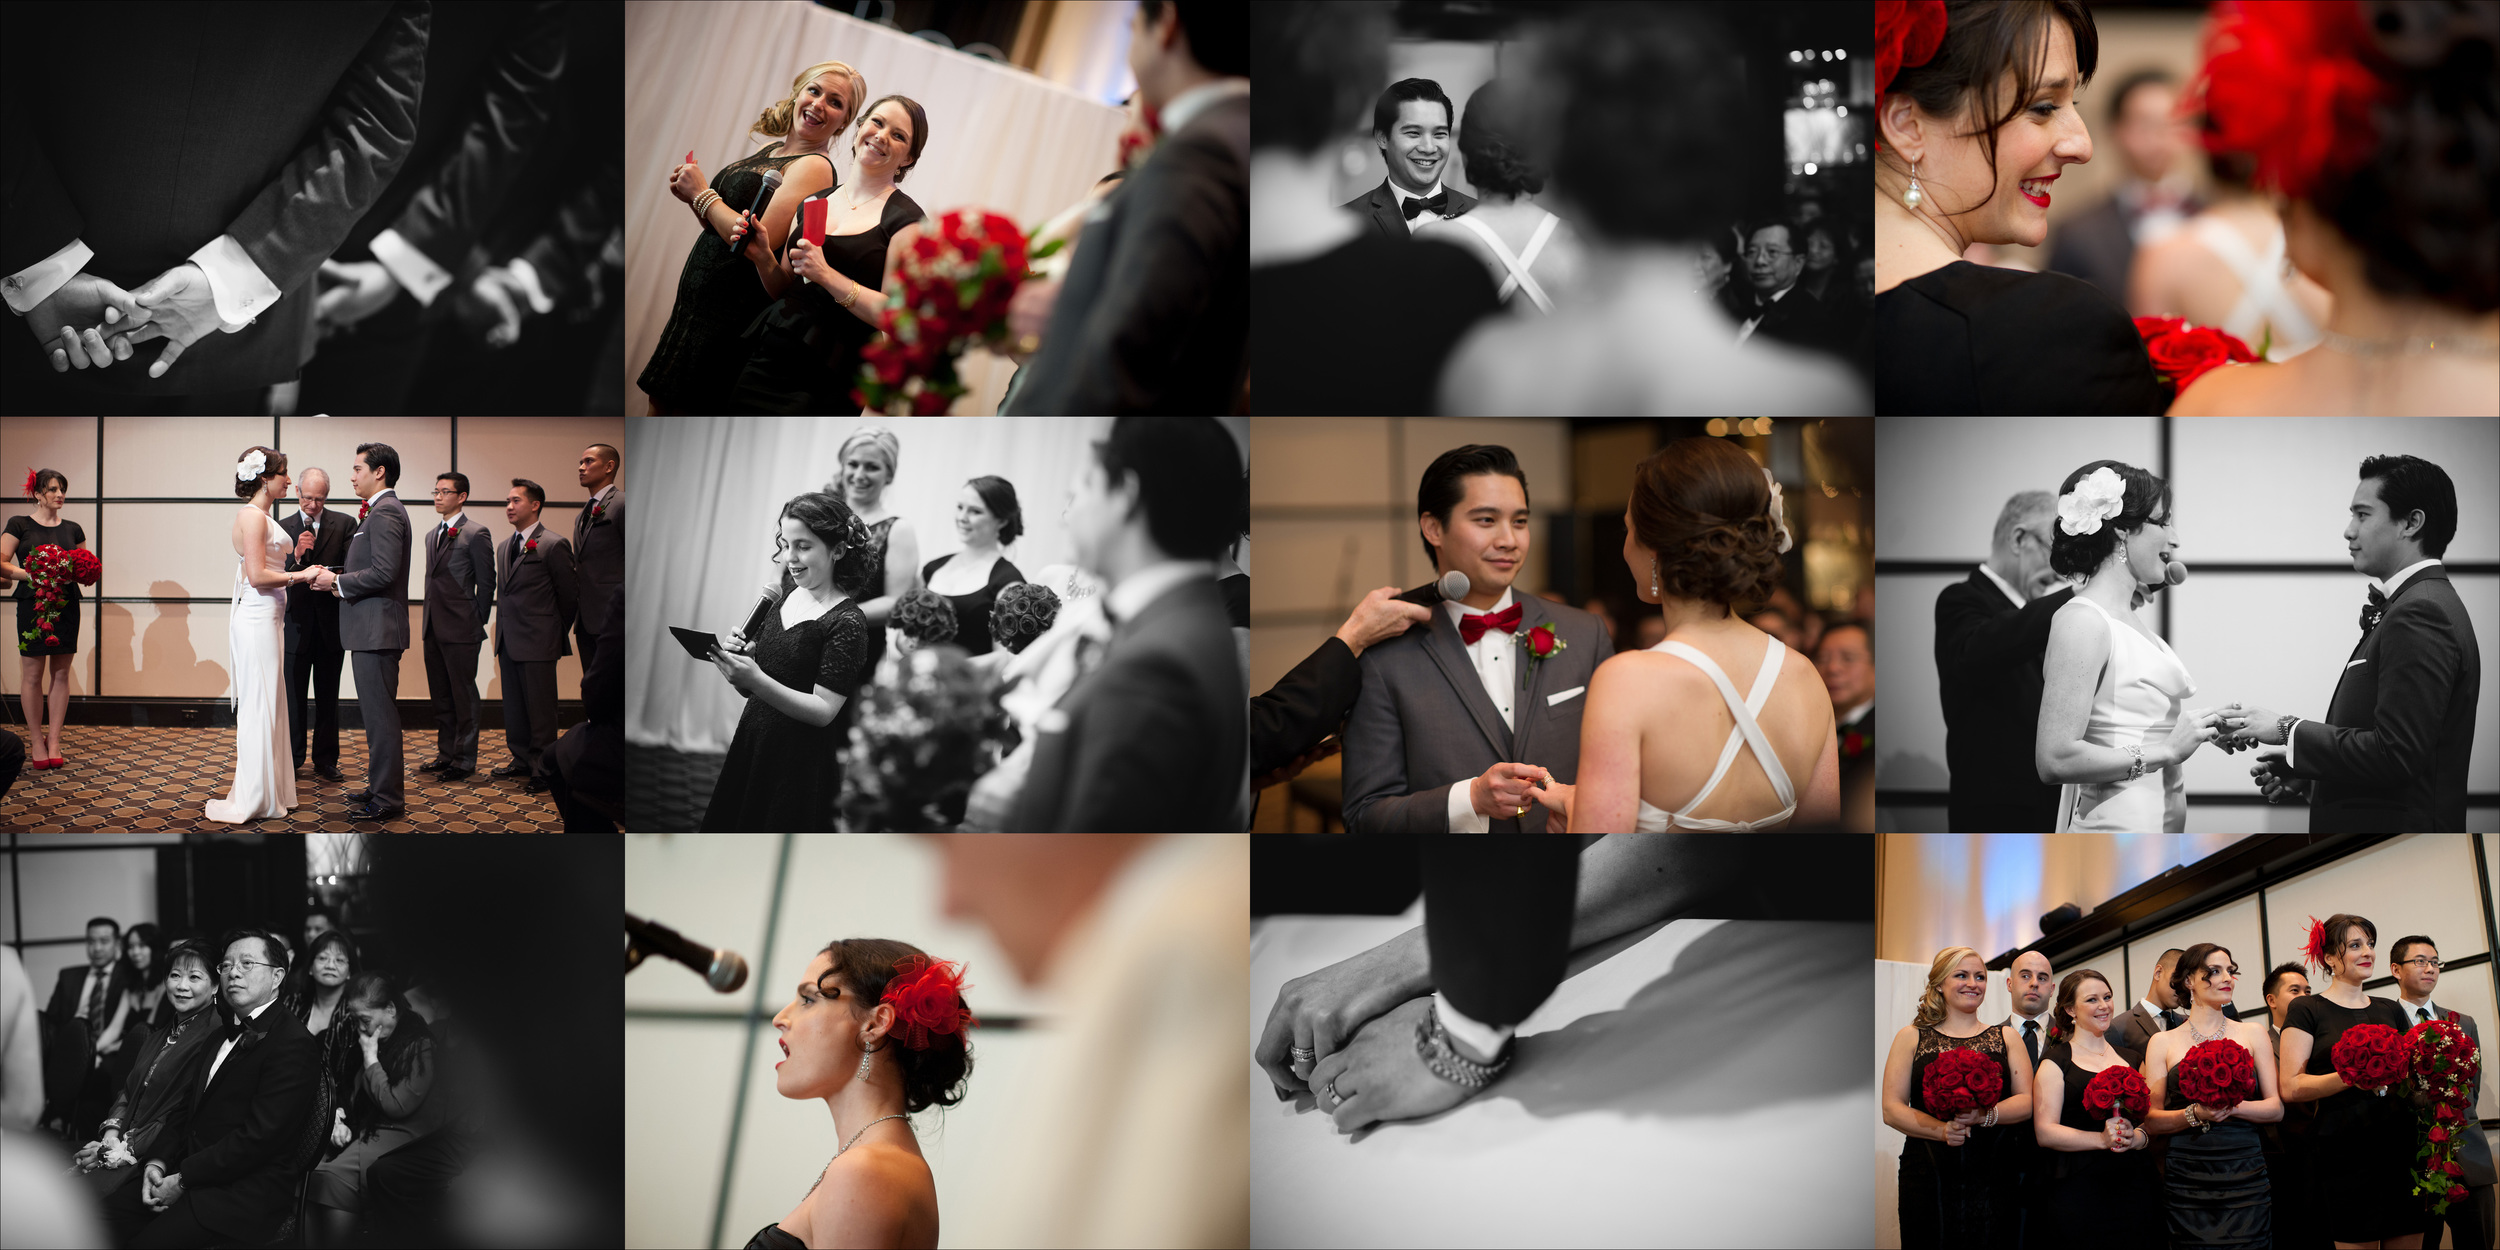 eglinton-grand-wedding-toronto040.JPG